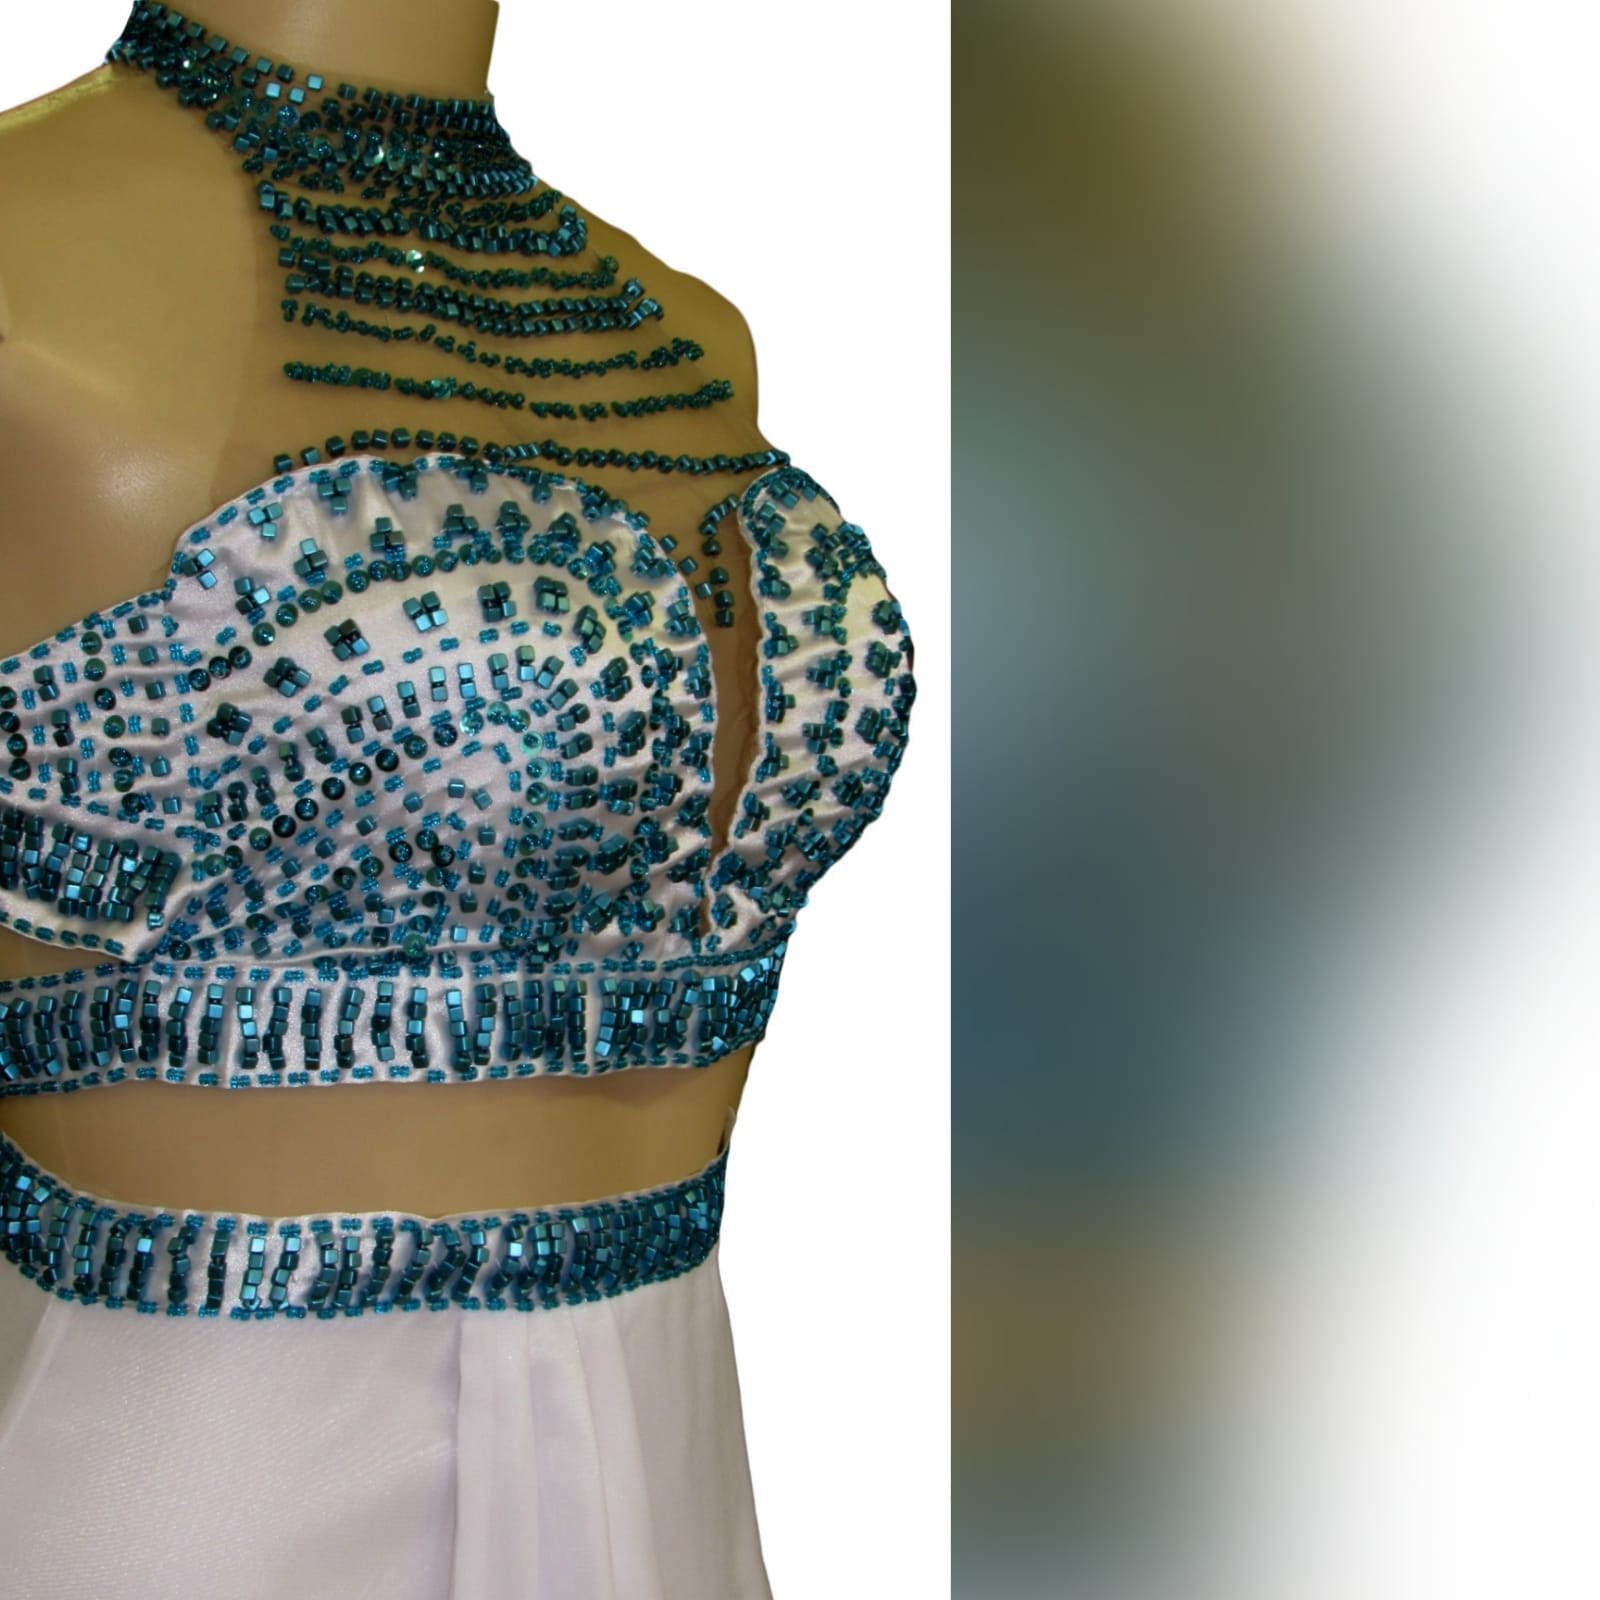 2 piece white and turquoise formal dress 7 2 piece white and turquoise formal dress. Crop top beaded with turquoise beads, chiffon skirt with a crossed slit and a train and a beaded waistband.